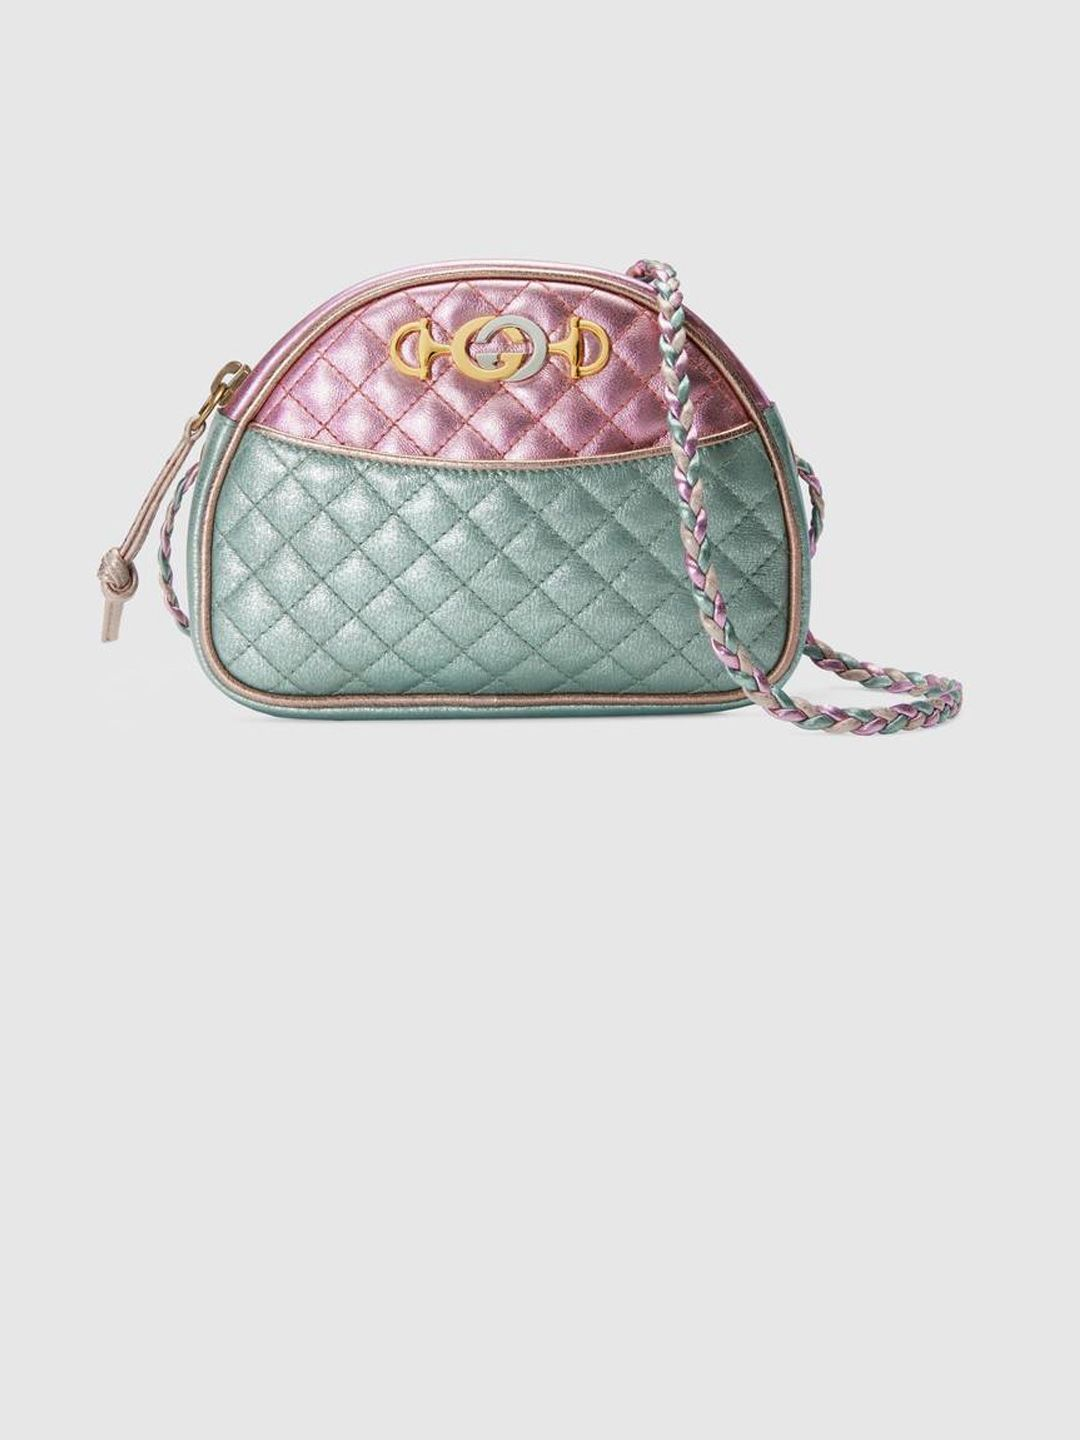 GUCCI BAG IN LAMINATED LEATHER